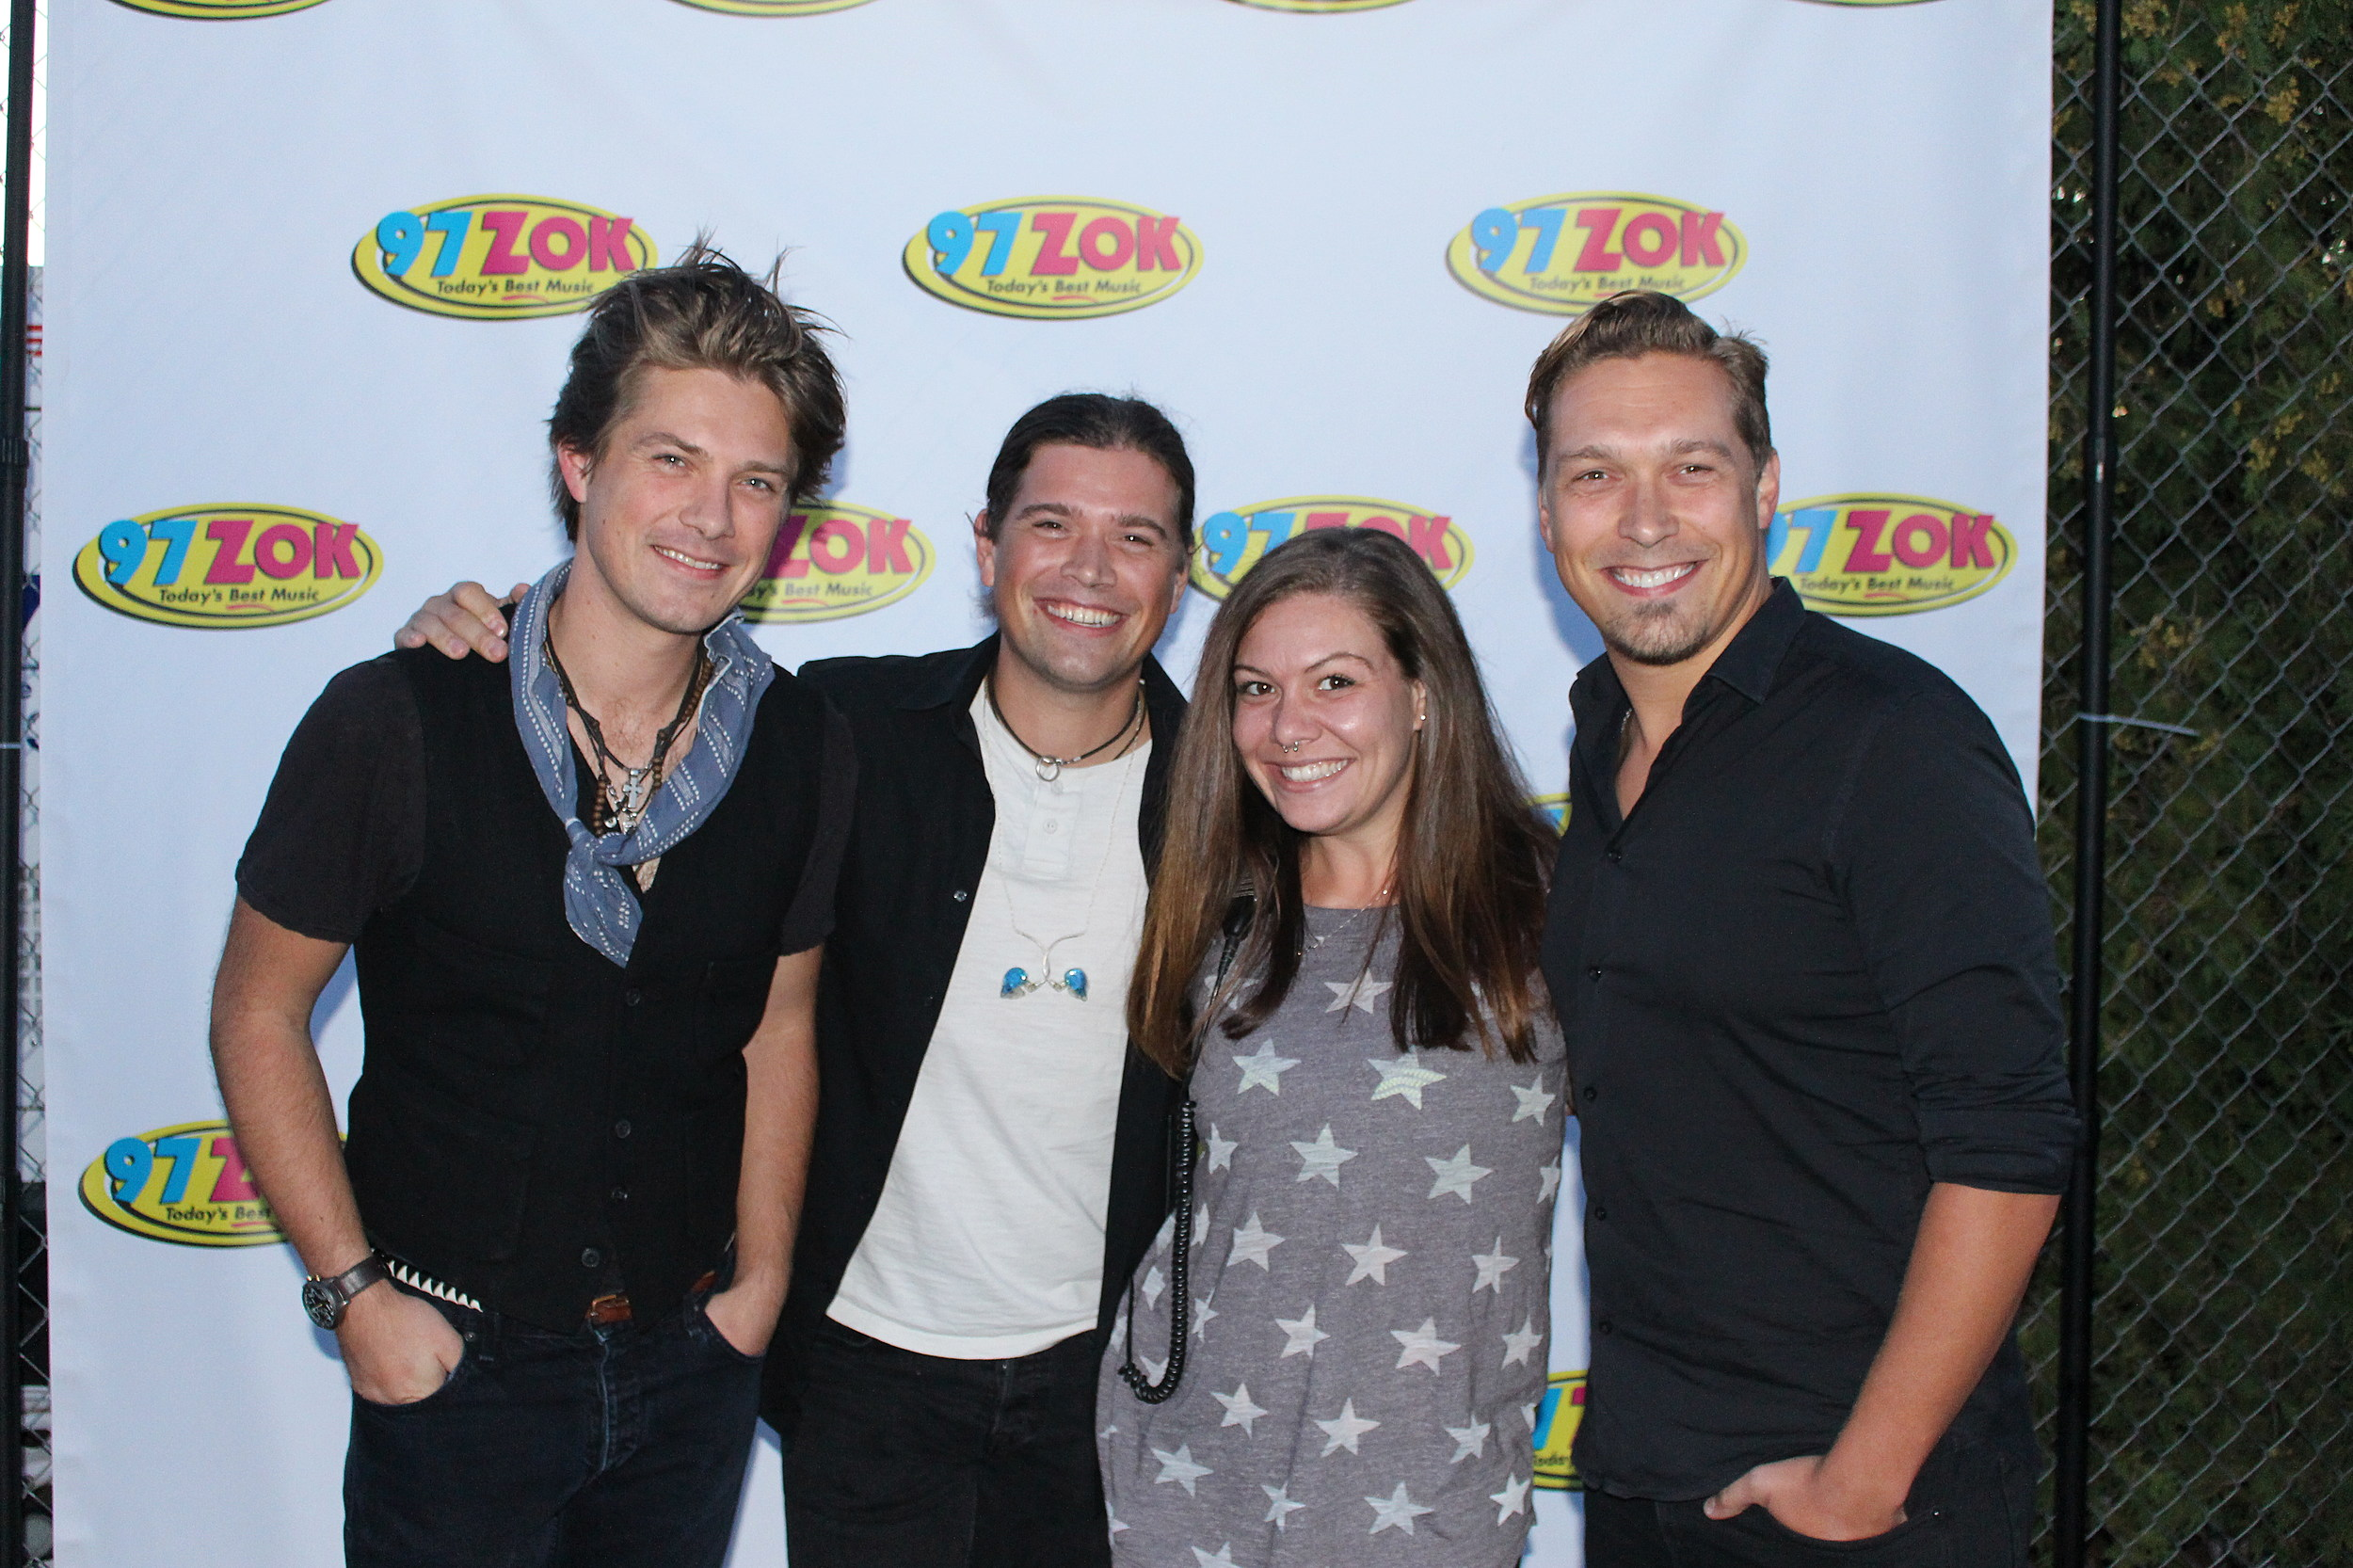 Hanson Meet And Greet Photos From Brews And Bbq 2016